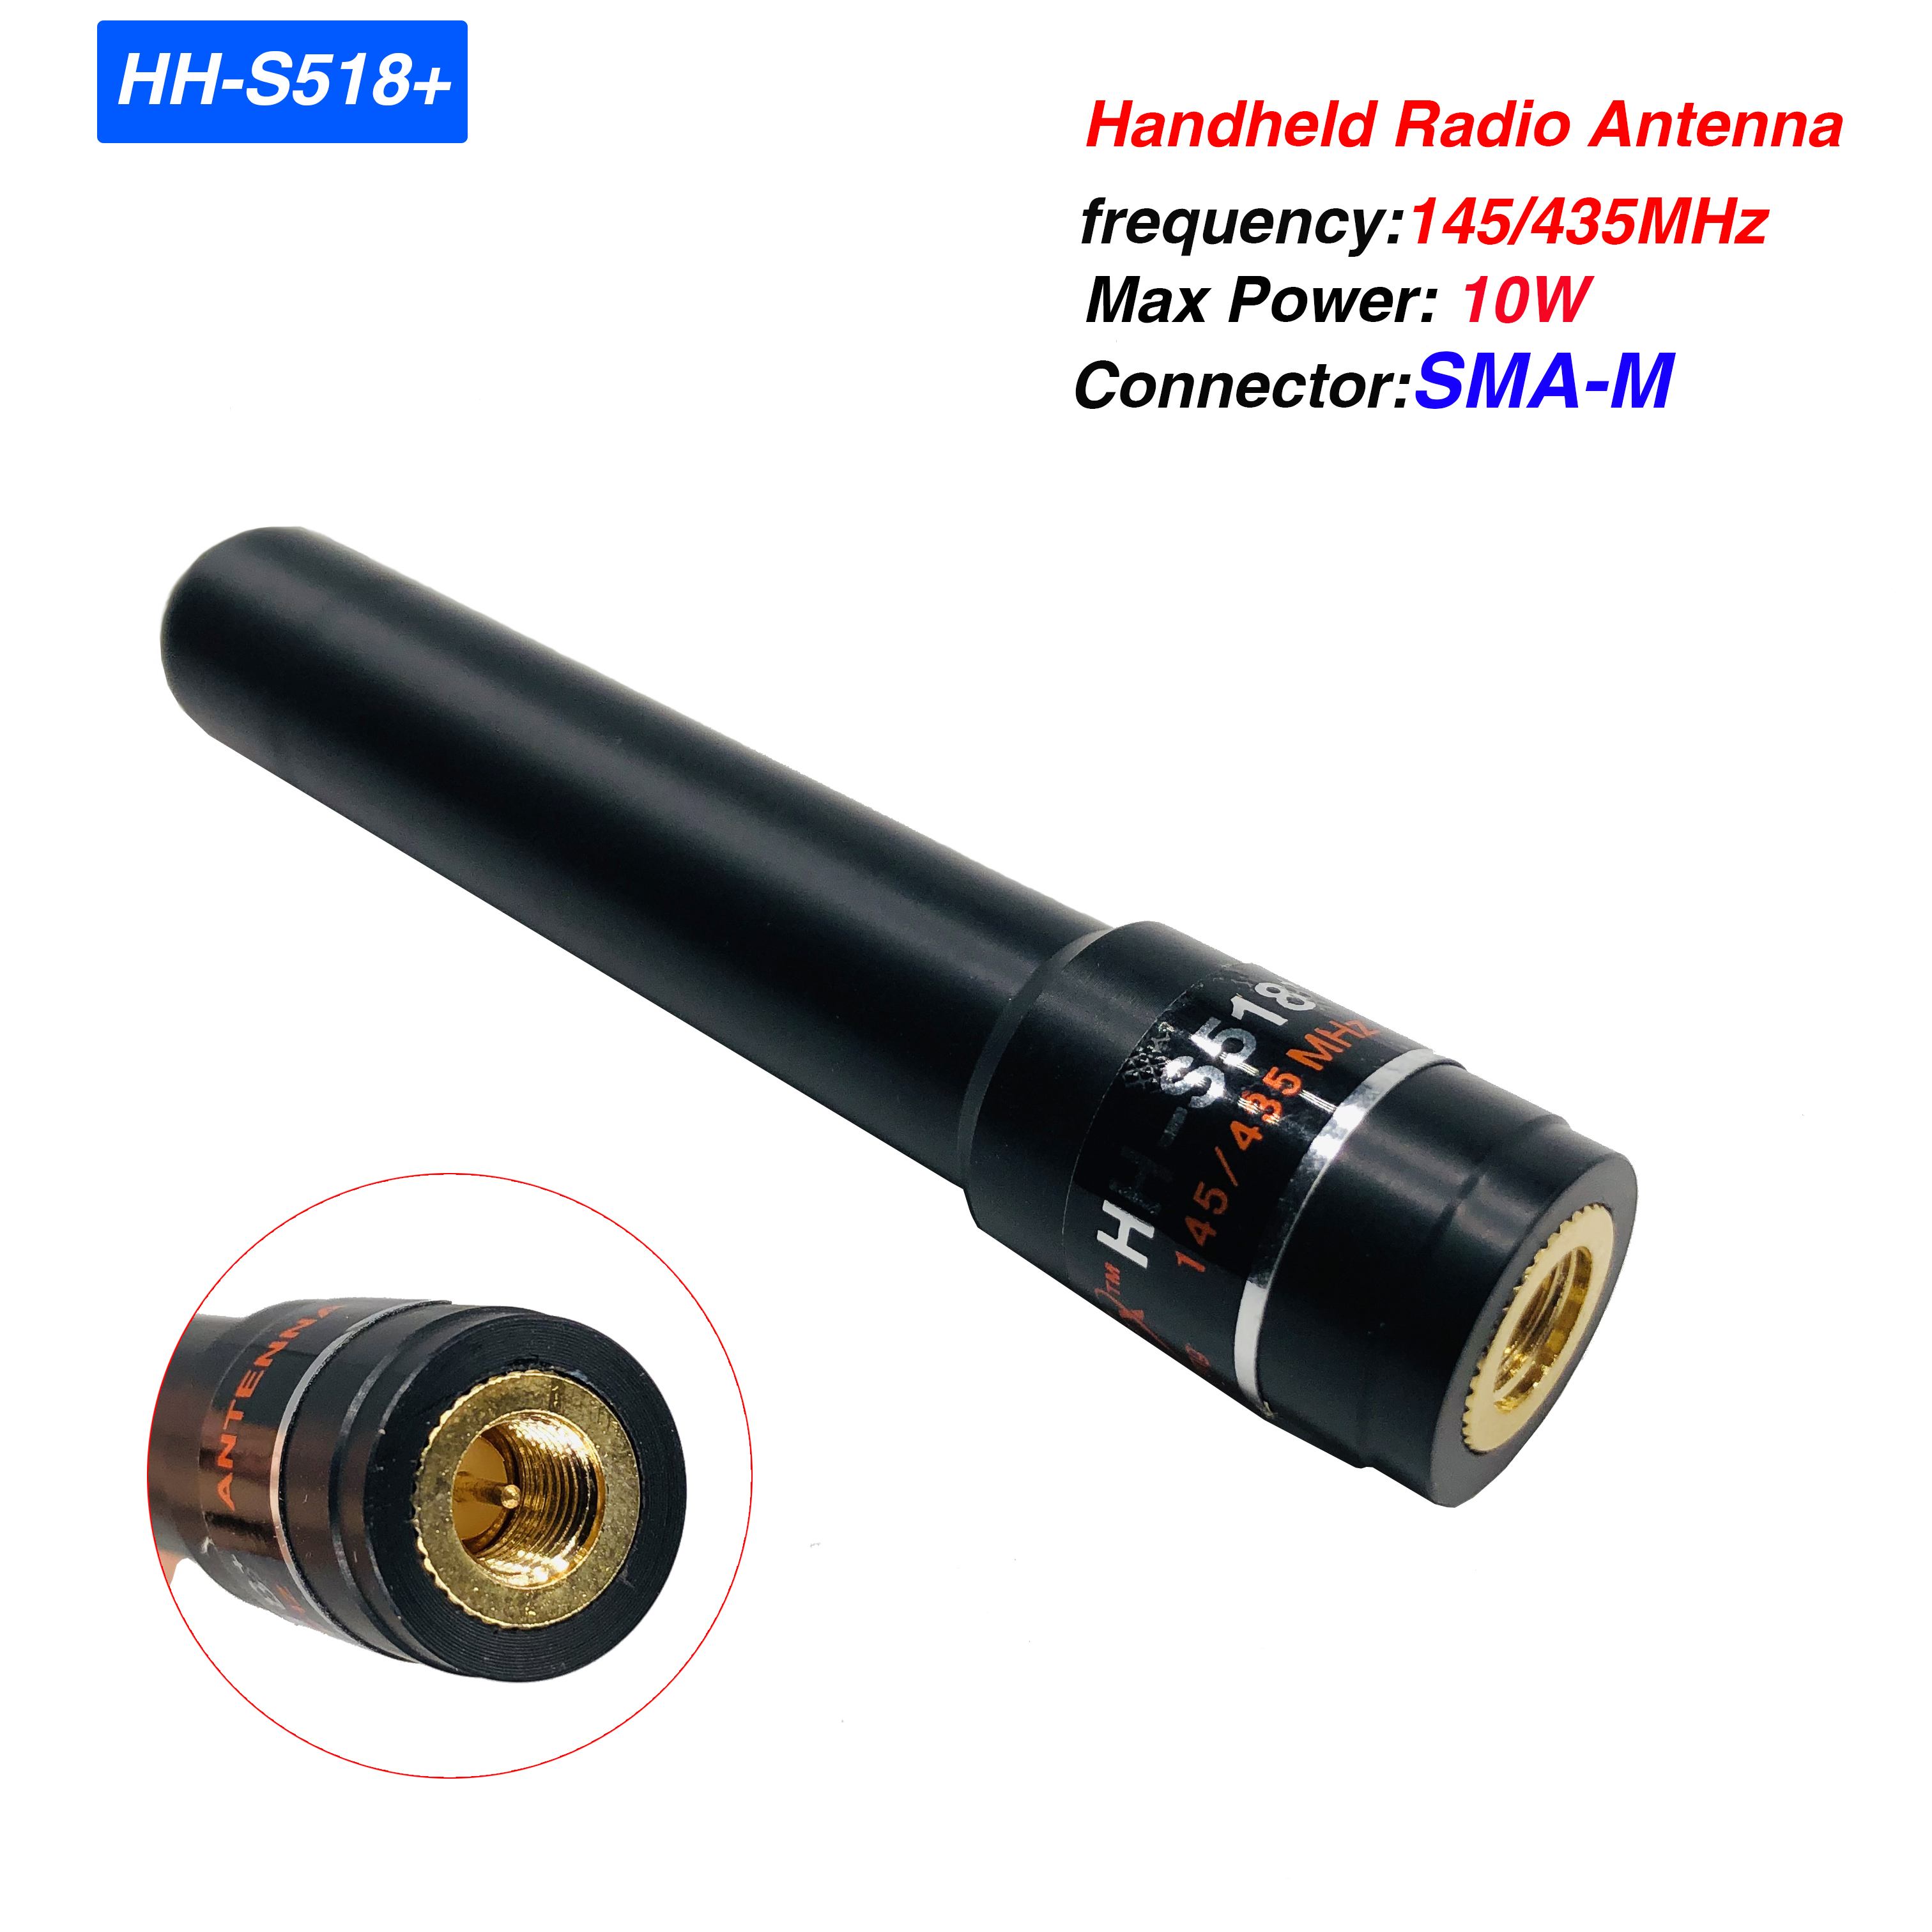 HH-S518+ SMA-M Male High Gain Stubby Antenna 10w Dual Band 145/435MHz Two Way Radio Antenna For BAOFENG UV-3R UV-100 UV-200 TYT